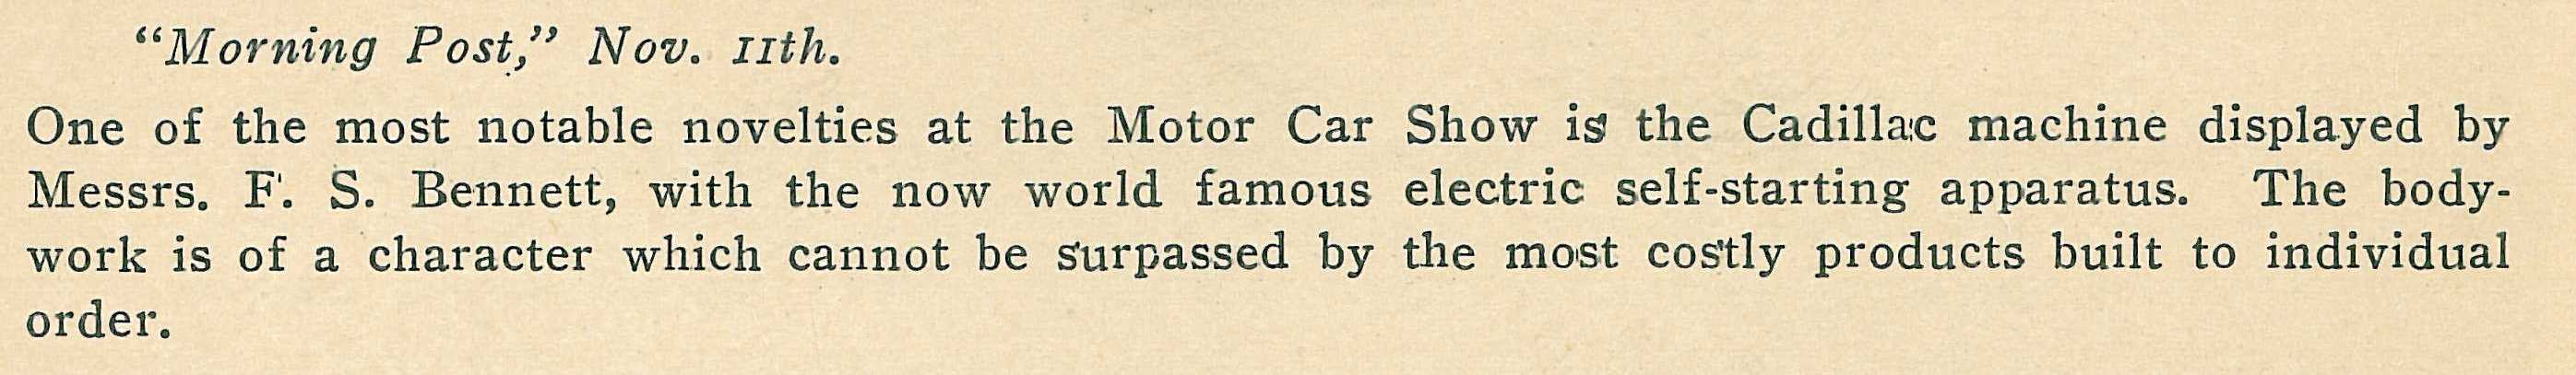 Quote from the London Morning Post - November 11, 1912